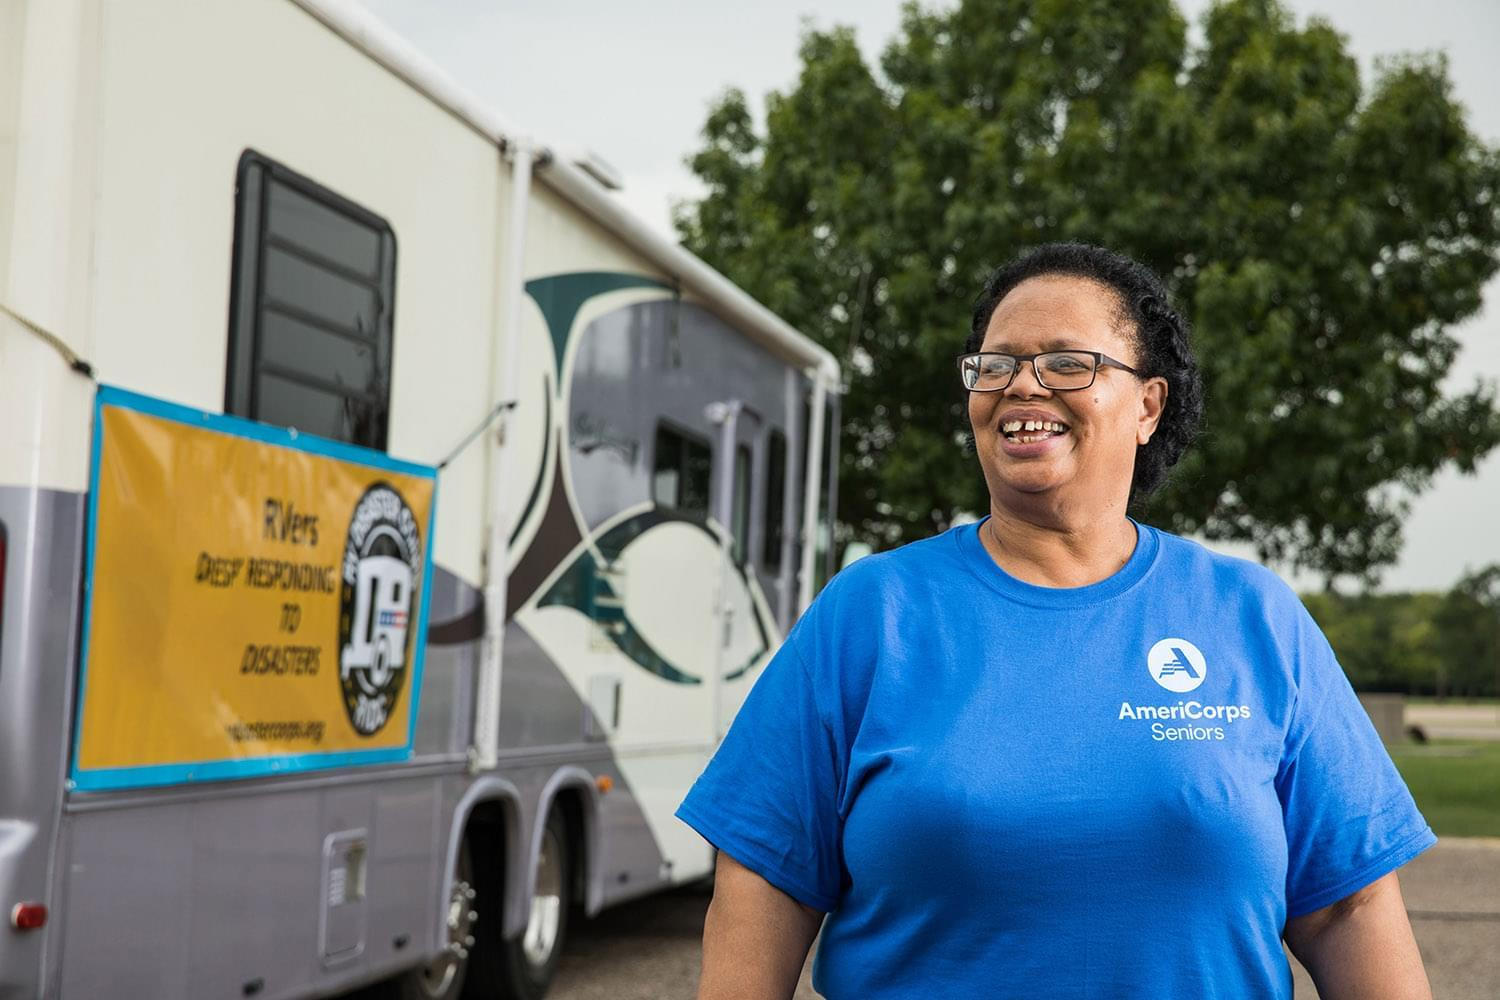 Woman wearing a blue AmeriCorps T-shirt